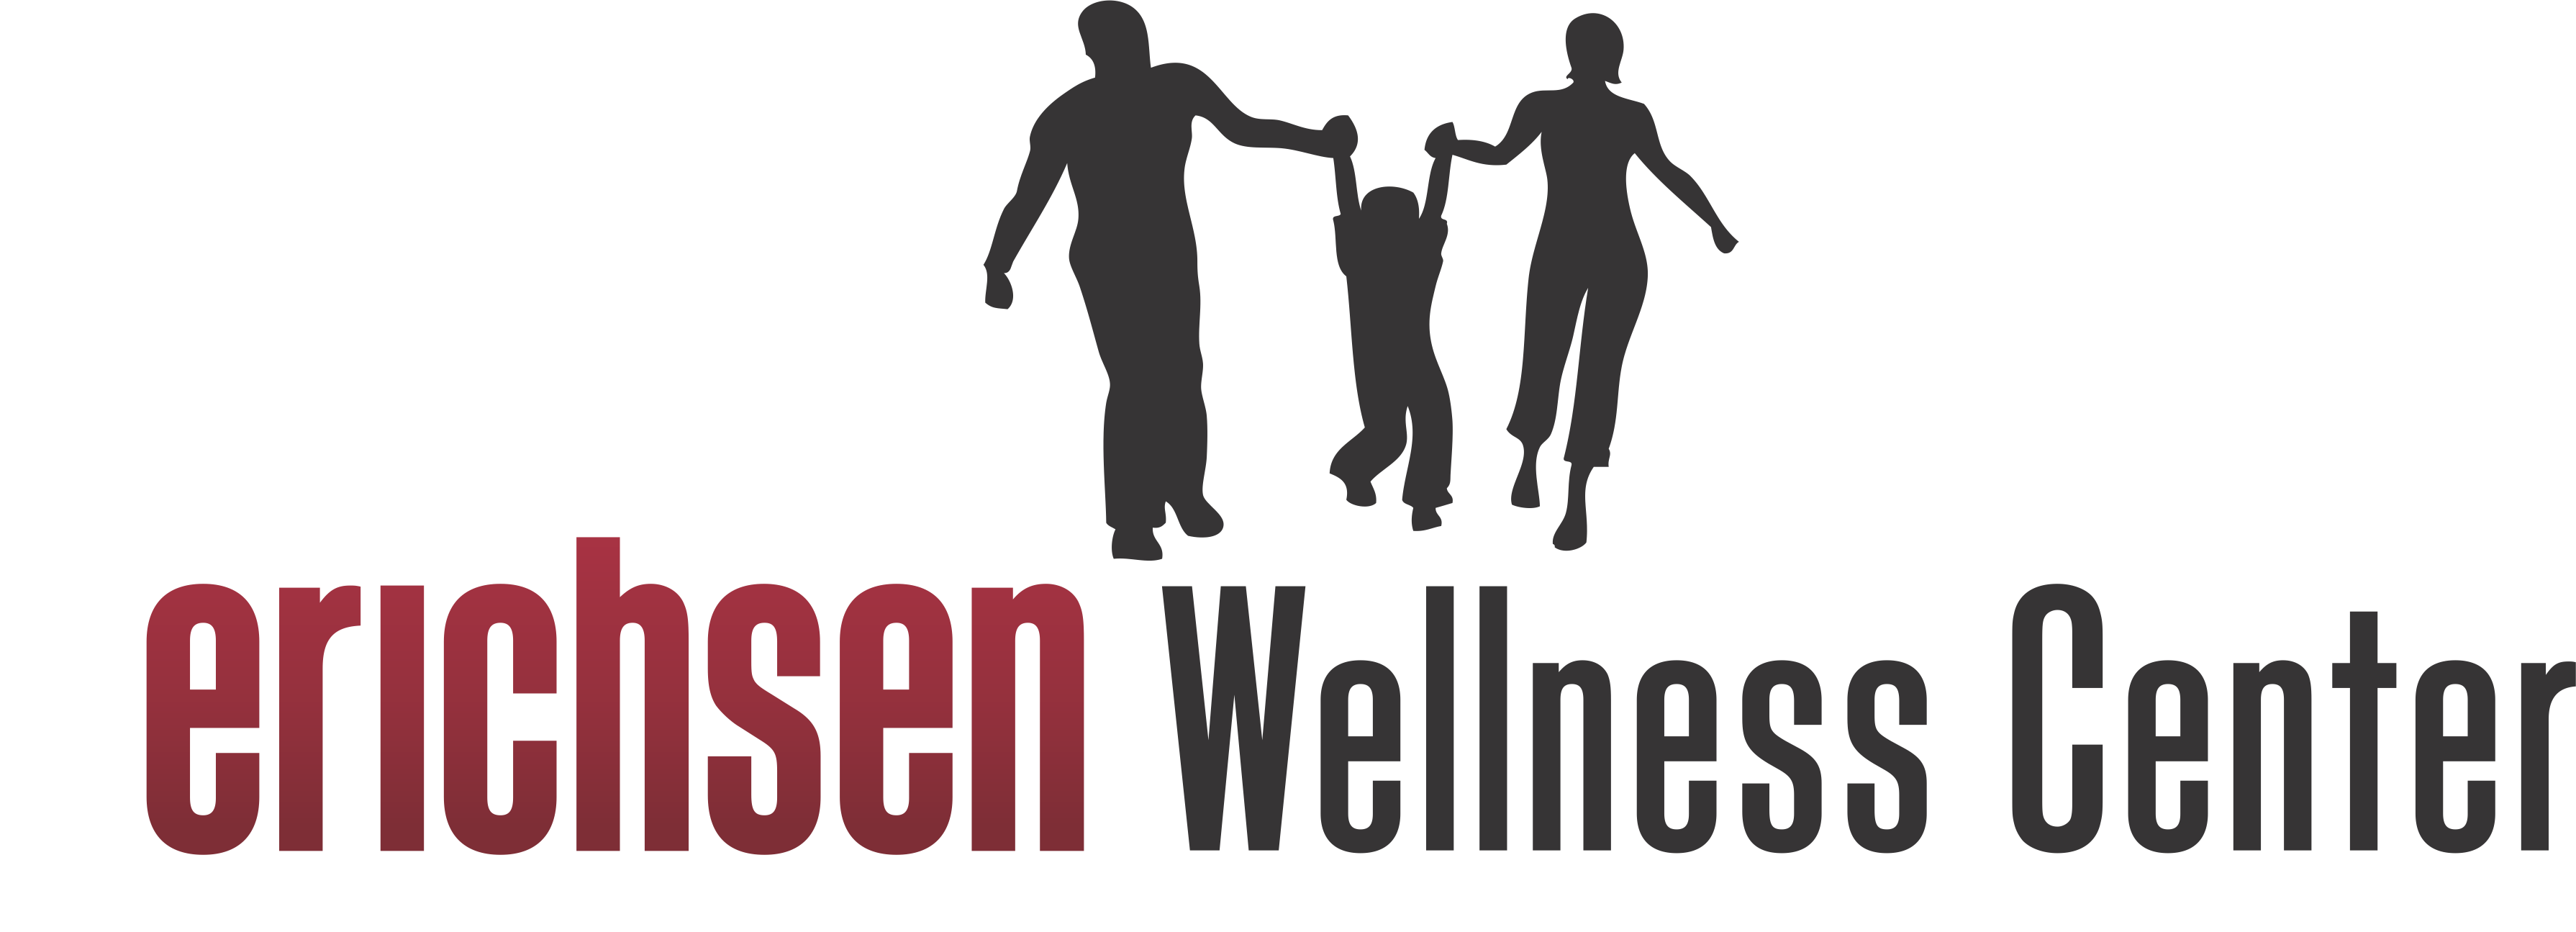 Erichsen Wellness Center